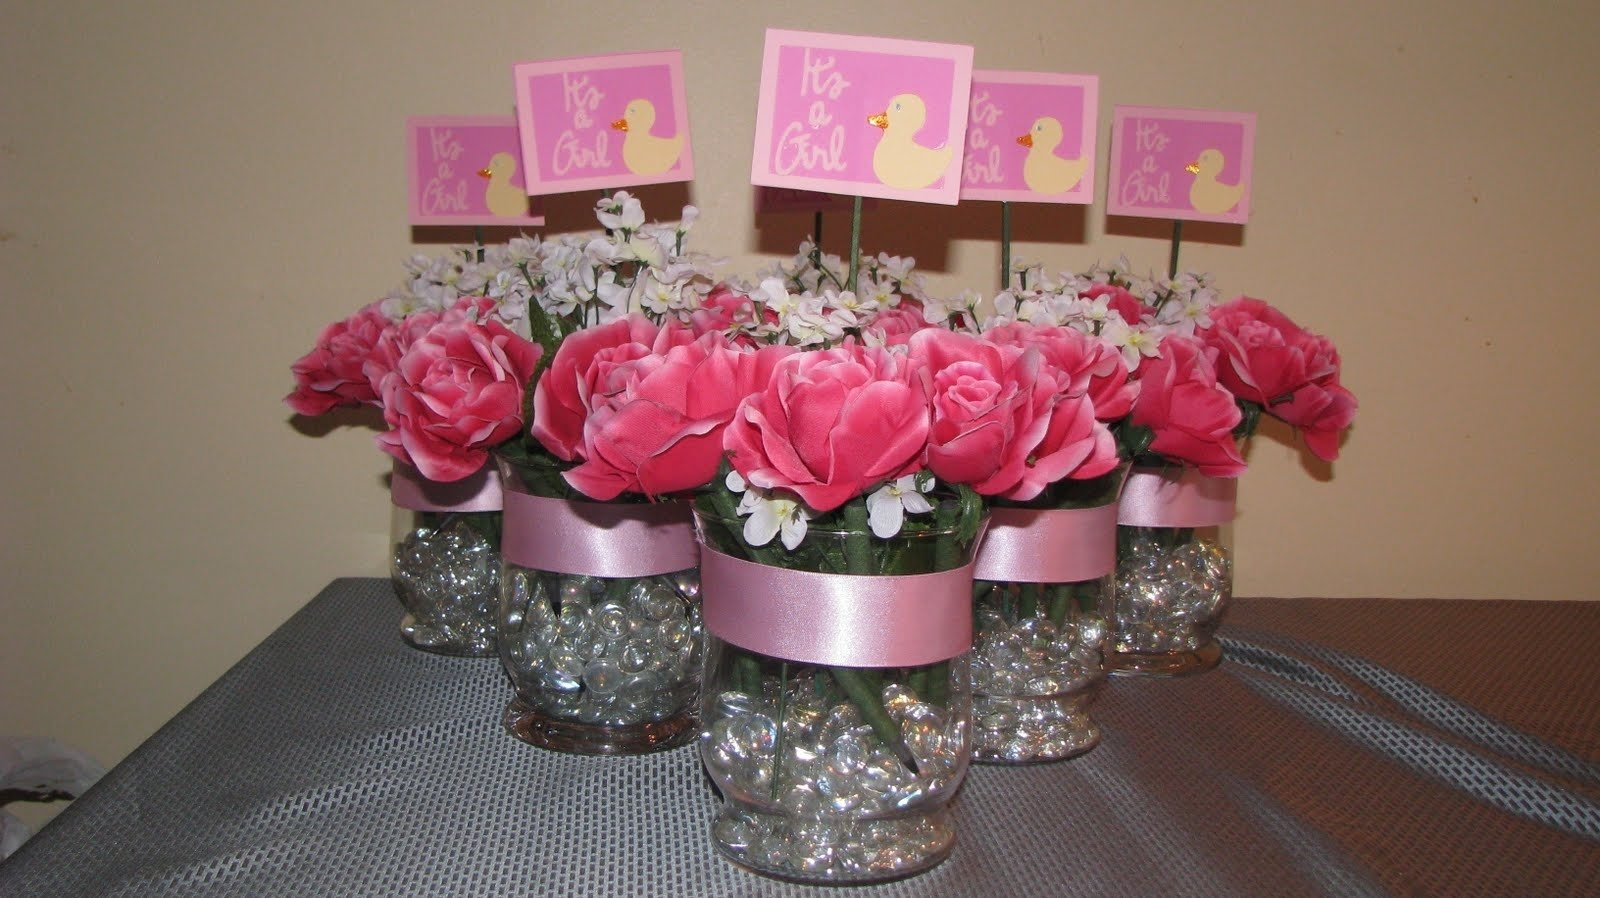 10 stylish centerpiece ideas for baby shower for a girl 10 stylish centerpiece ideas for baby shower for a girl baby shower table centerpiece ideas unique izmirmasajfo